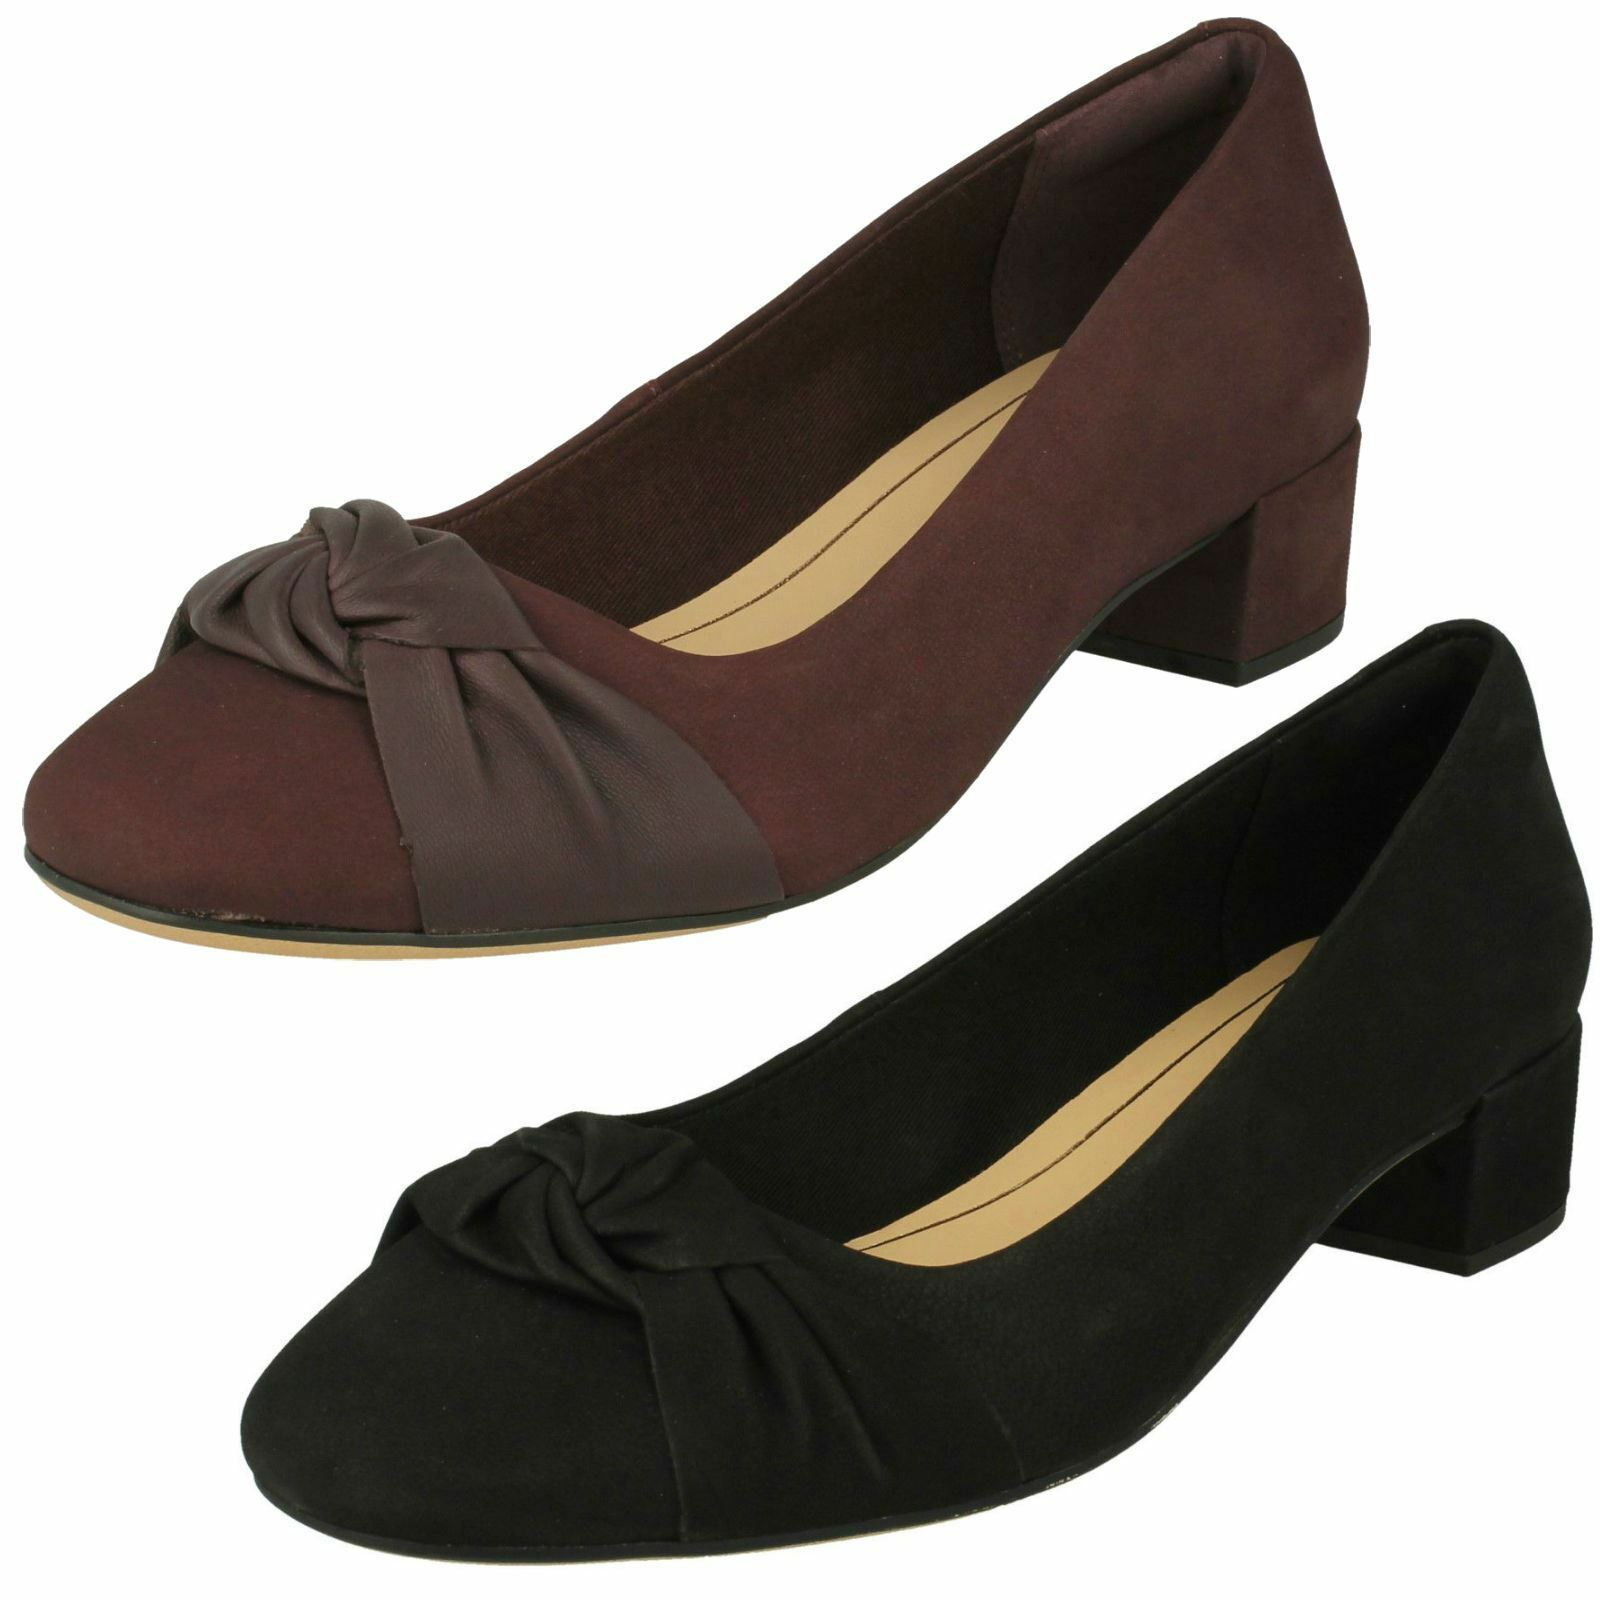 Damenschuhe Clarks Bow Detailed Block Heel Schuhes Orabella Lily